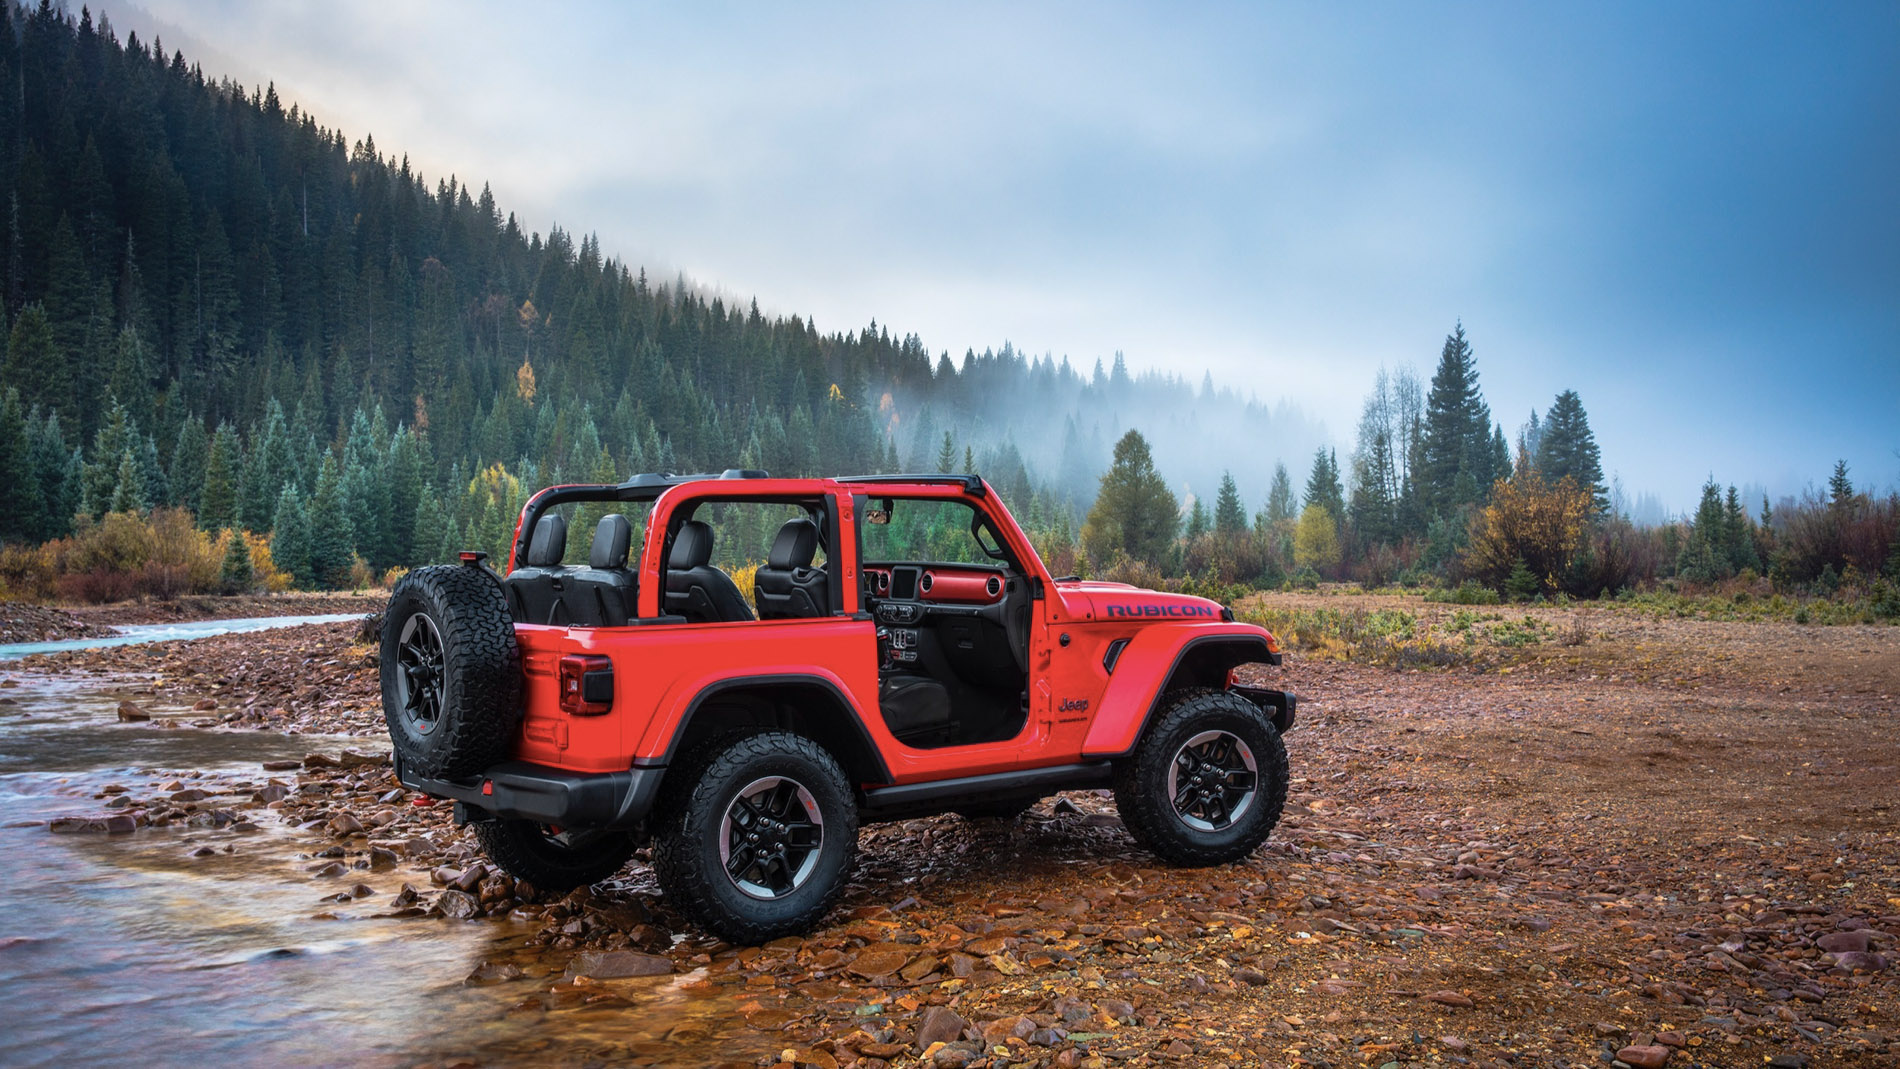 Official 2018 Jeep Wrangler Jl Specs Info Wallpapers 2005 Emissions Wiring Rubicon 47 1